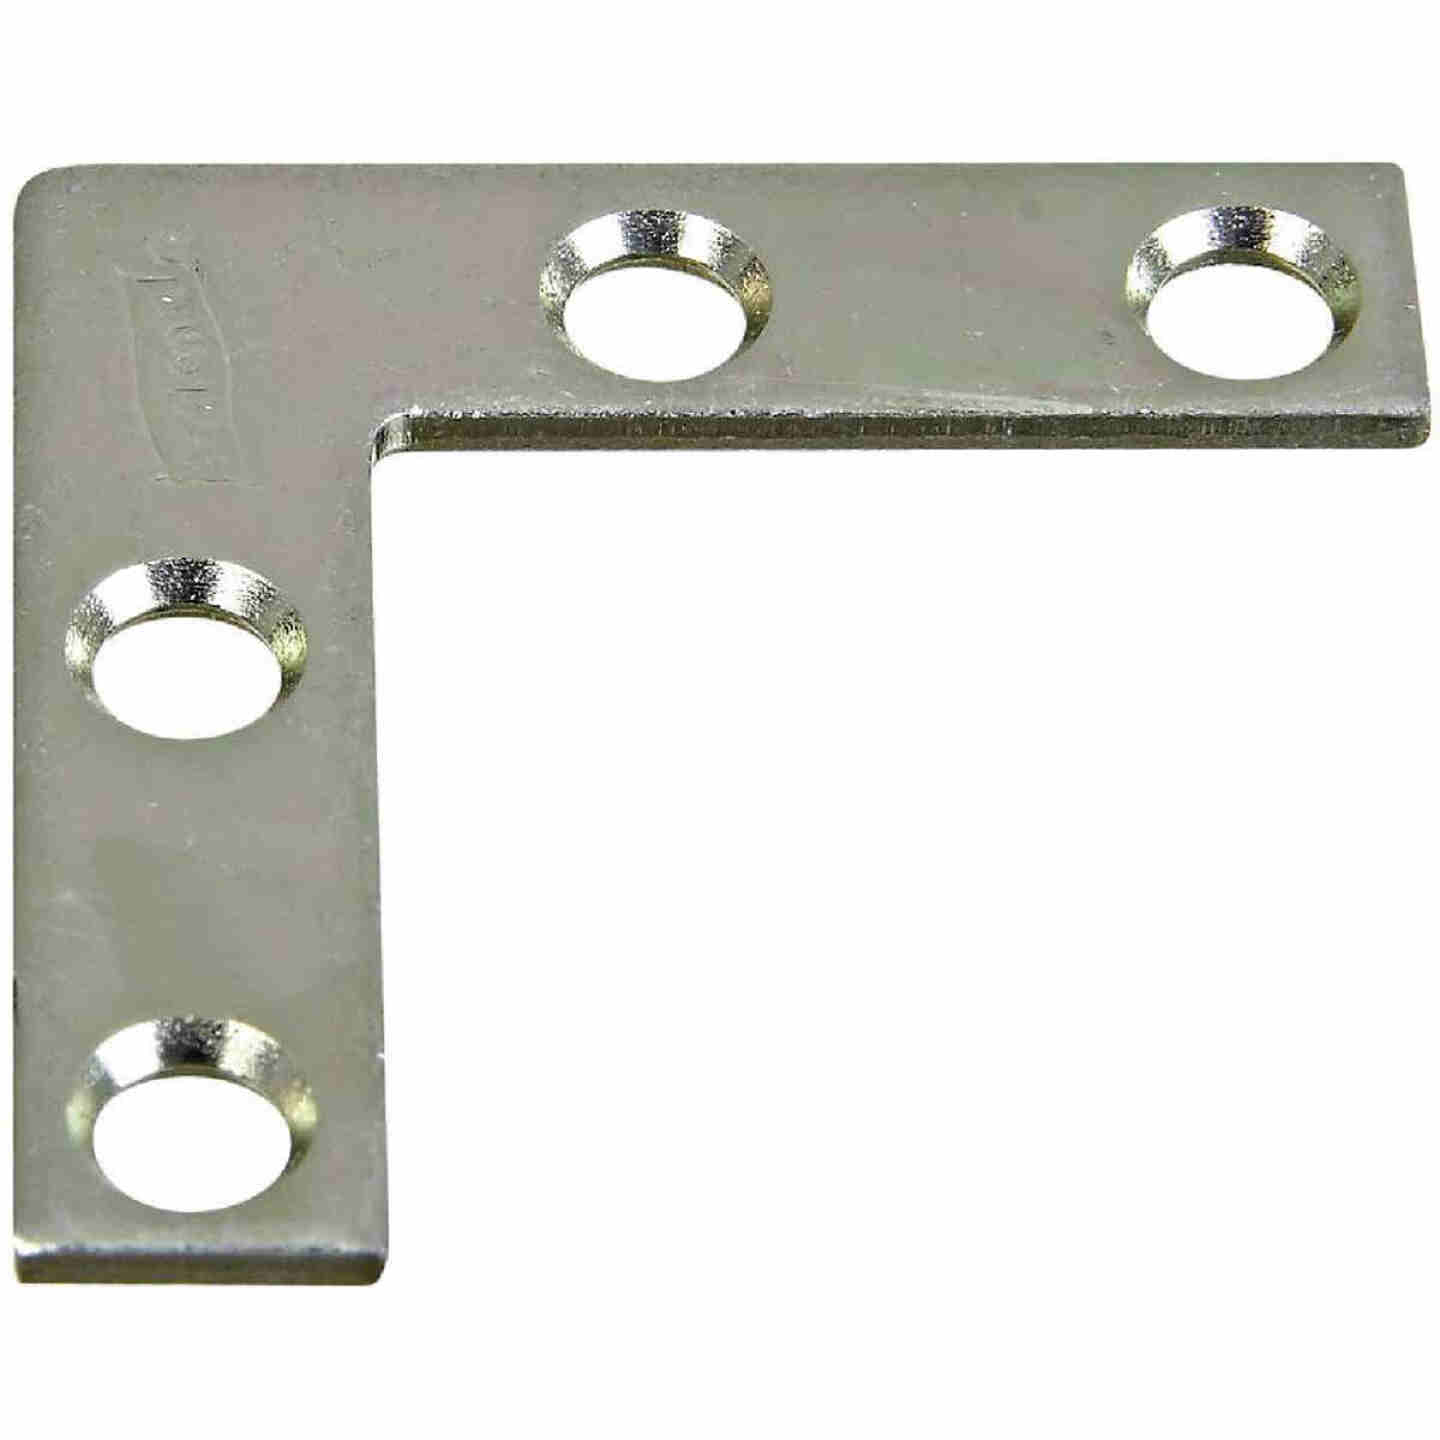 National Catalog 117 1-1/2 In. x 3/8 In. Zinc Flat Corner Iron Image 1